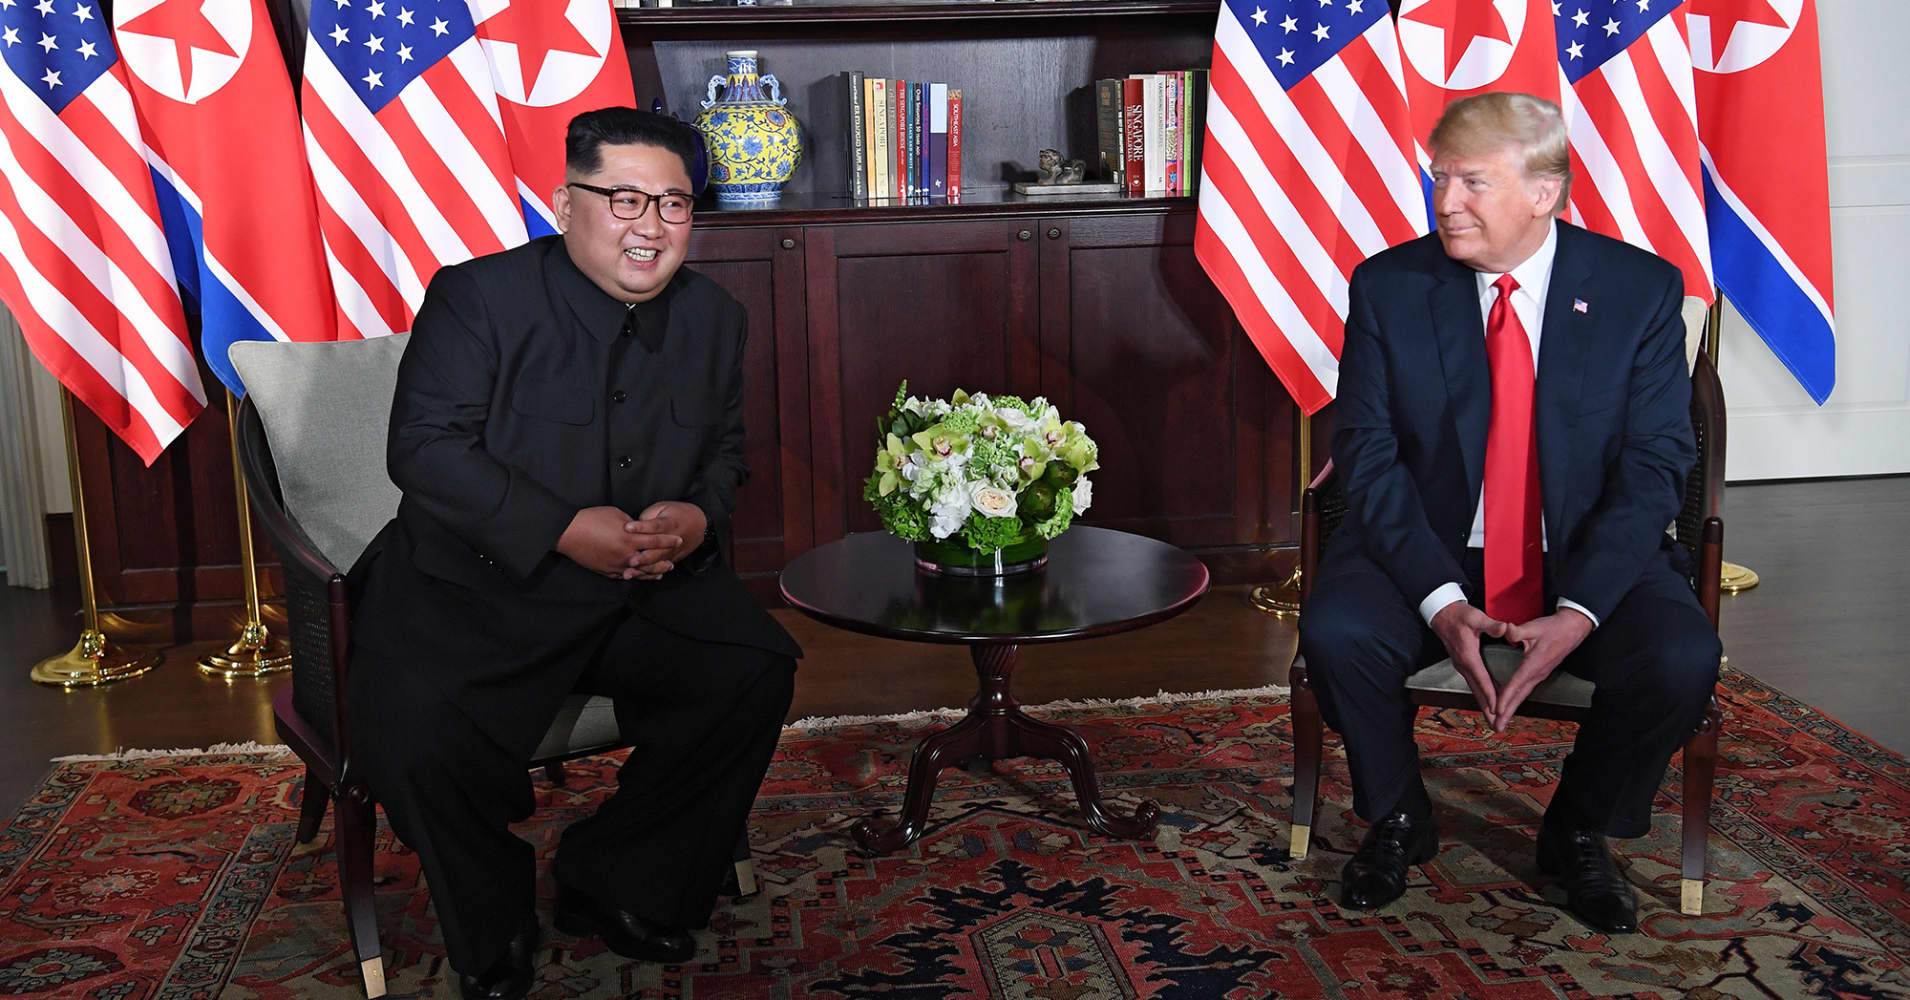 President Donald Trump (R) and North Korea's leader Kim Jong Un (L) sit down for their historic US-North Korea summit, at the Capella Hotel on Sentosa island in Singapore on June 12, 2018.